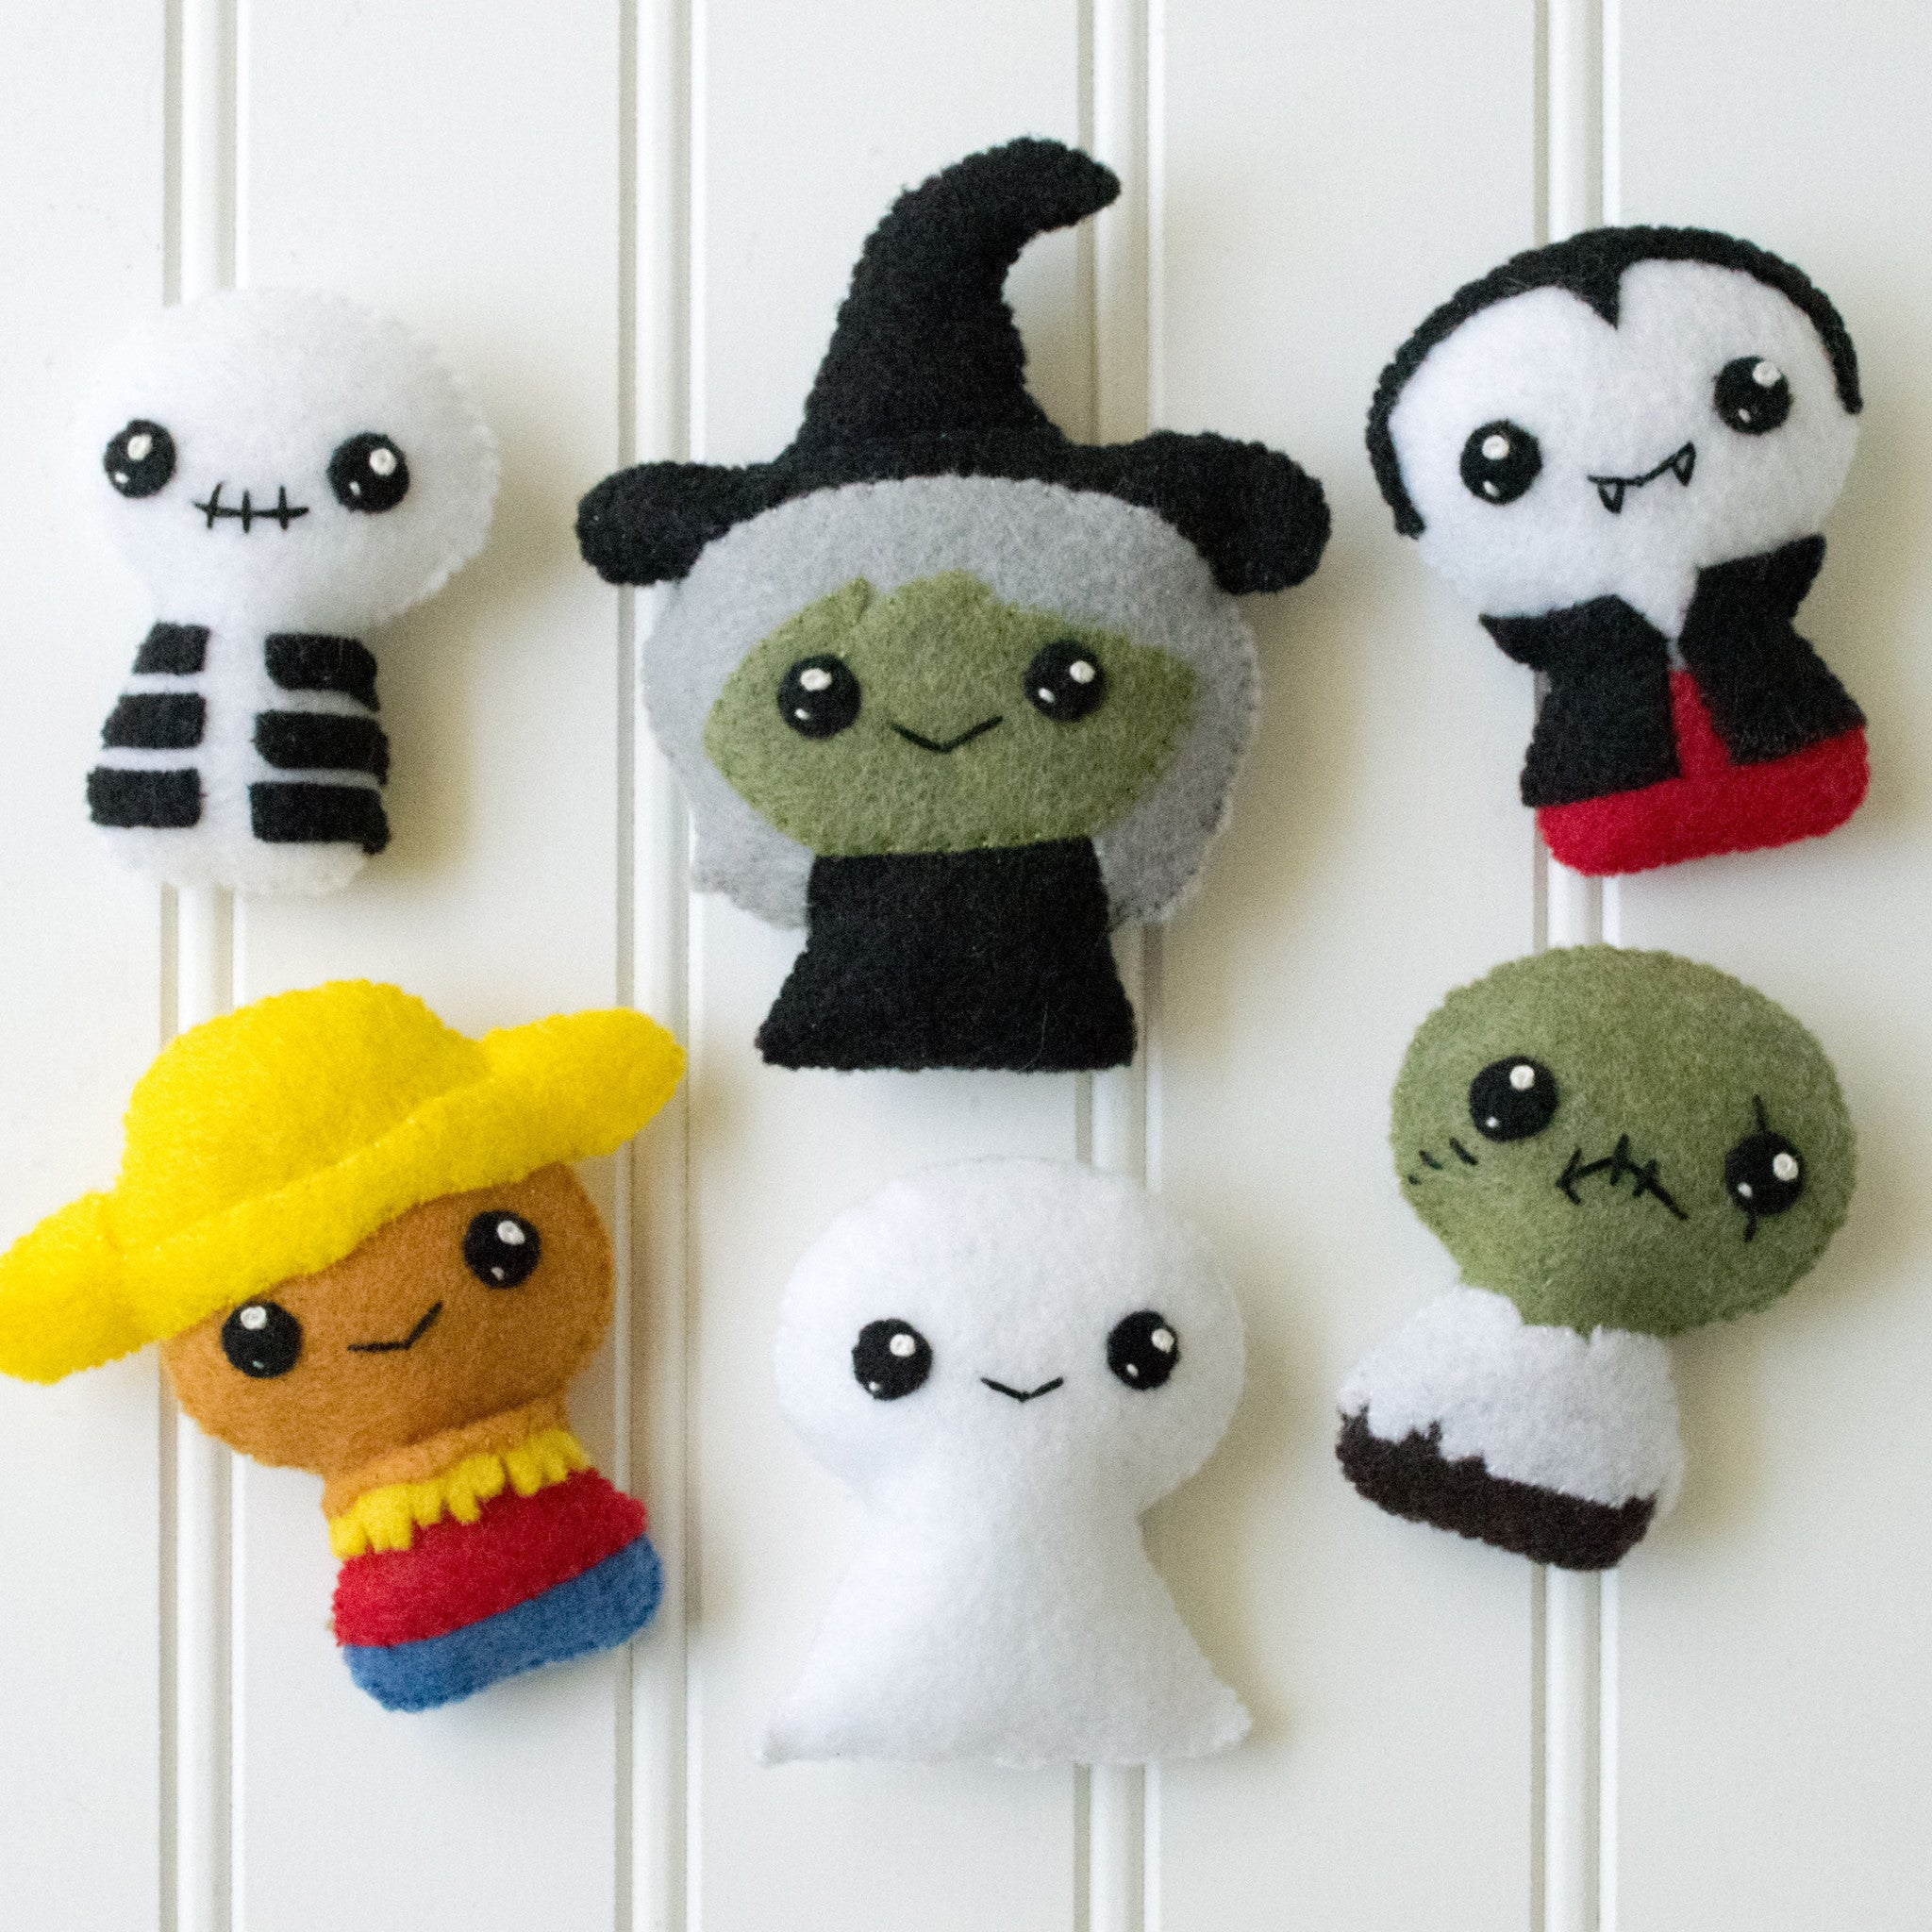 Adorblings™ Felt Embroidery Pattern - Trick or Treat 1 - Ghost, Zombie, Vampire, Skeleton, Witch and Scarecrow - CraftyAlien.com